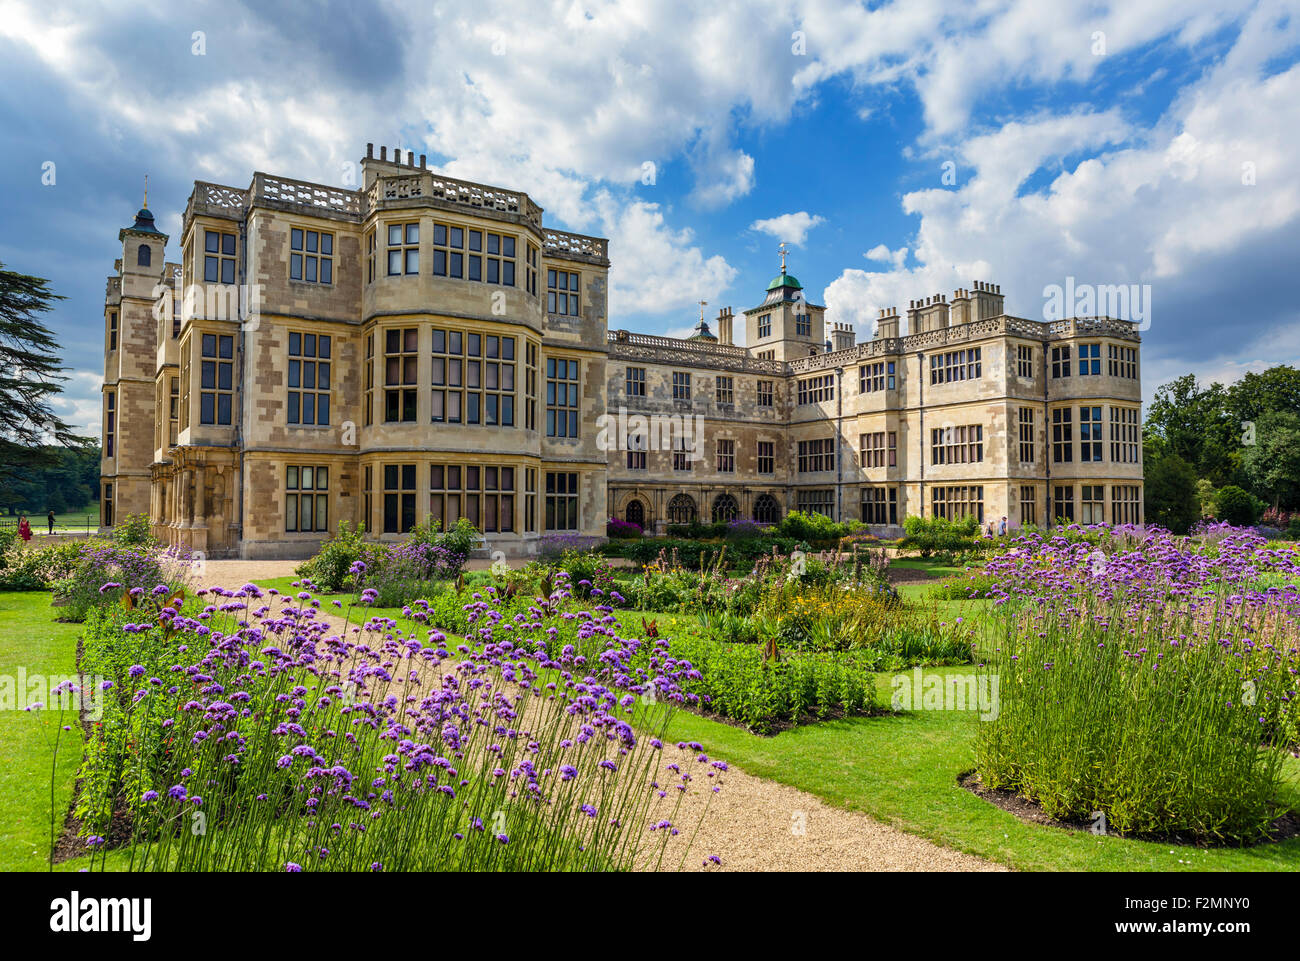 The gardens at the rear of Audley End House, a 17thC country house near Saffron Waldon, Essex, England, UK - Stock Image